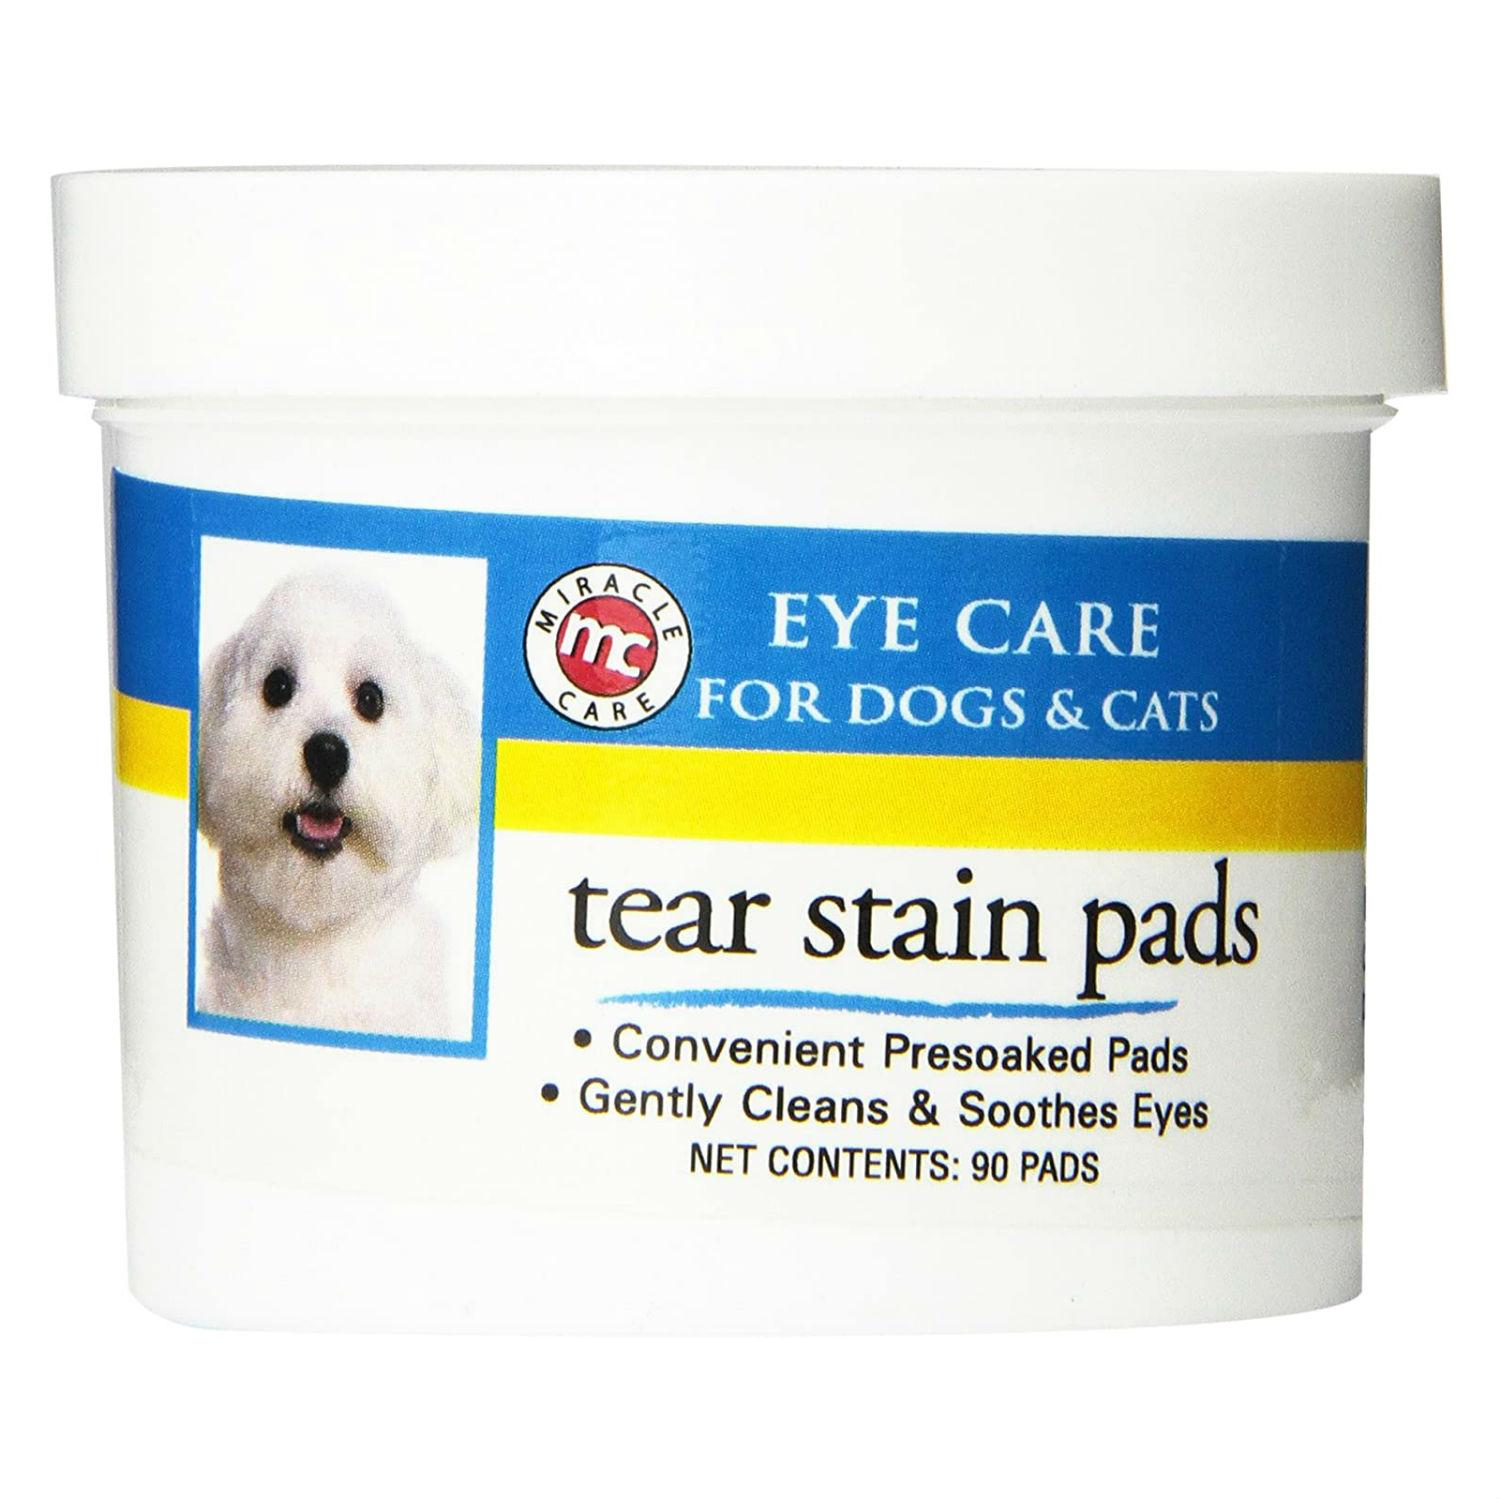 Miracle Care Tear Stain Pads for Dogs and Cats